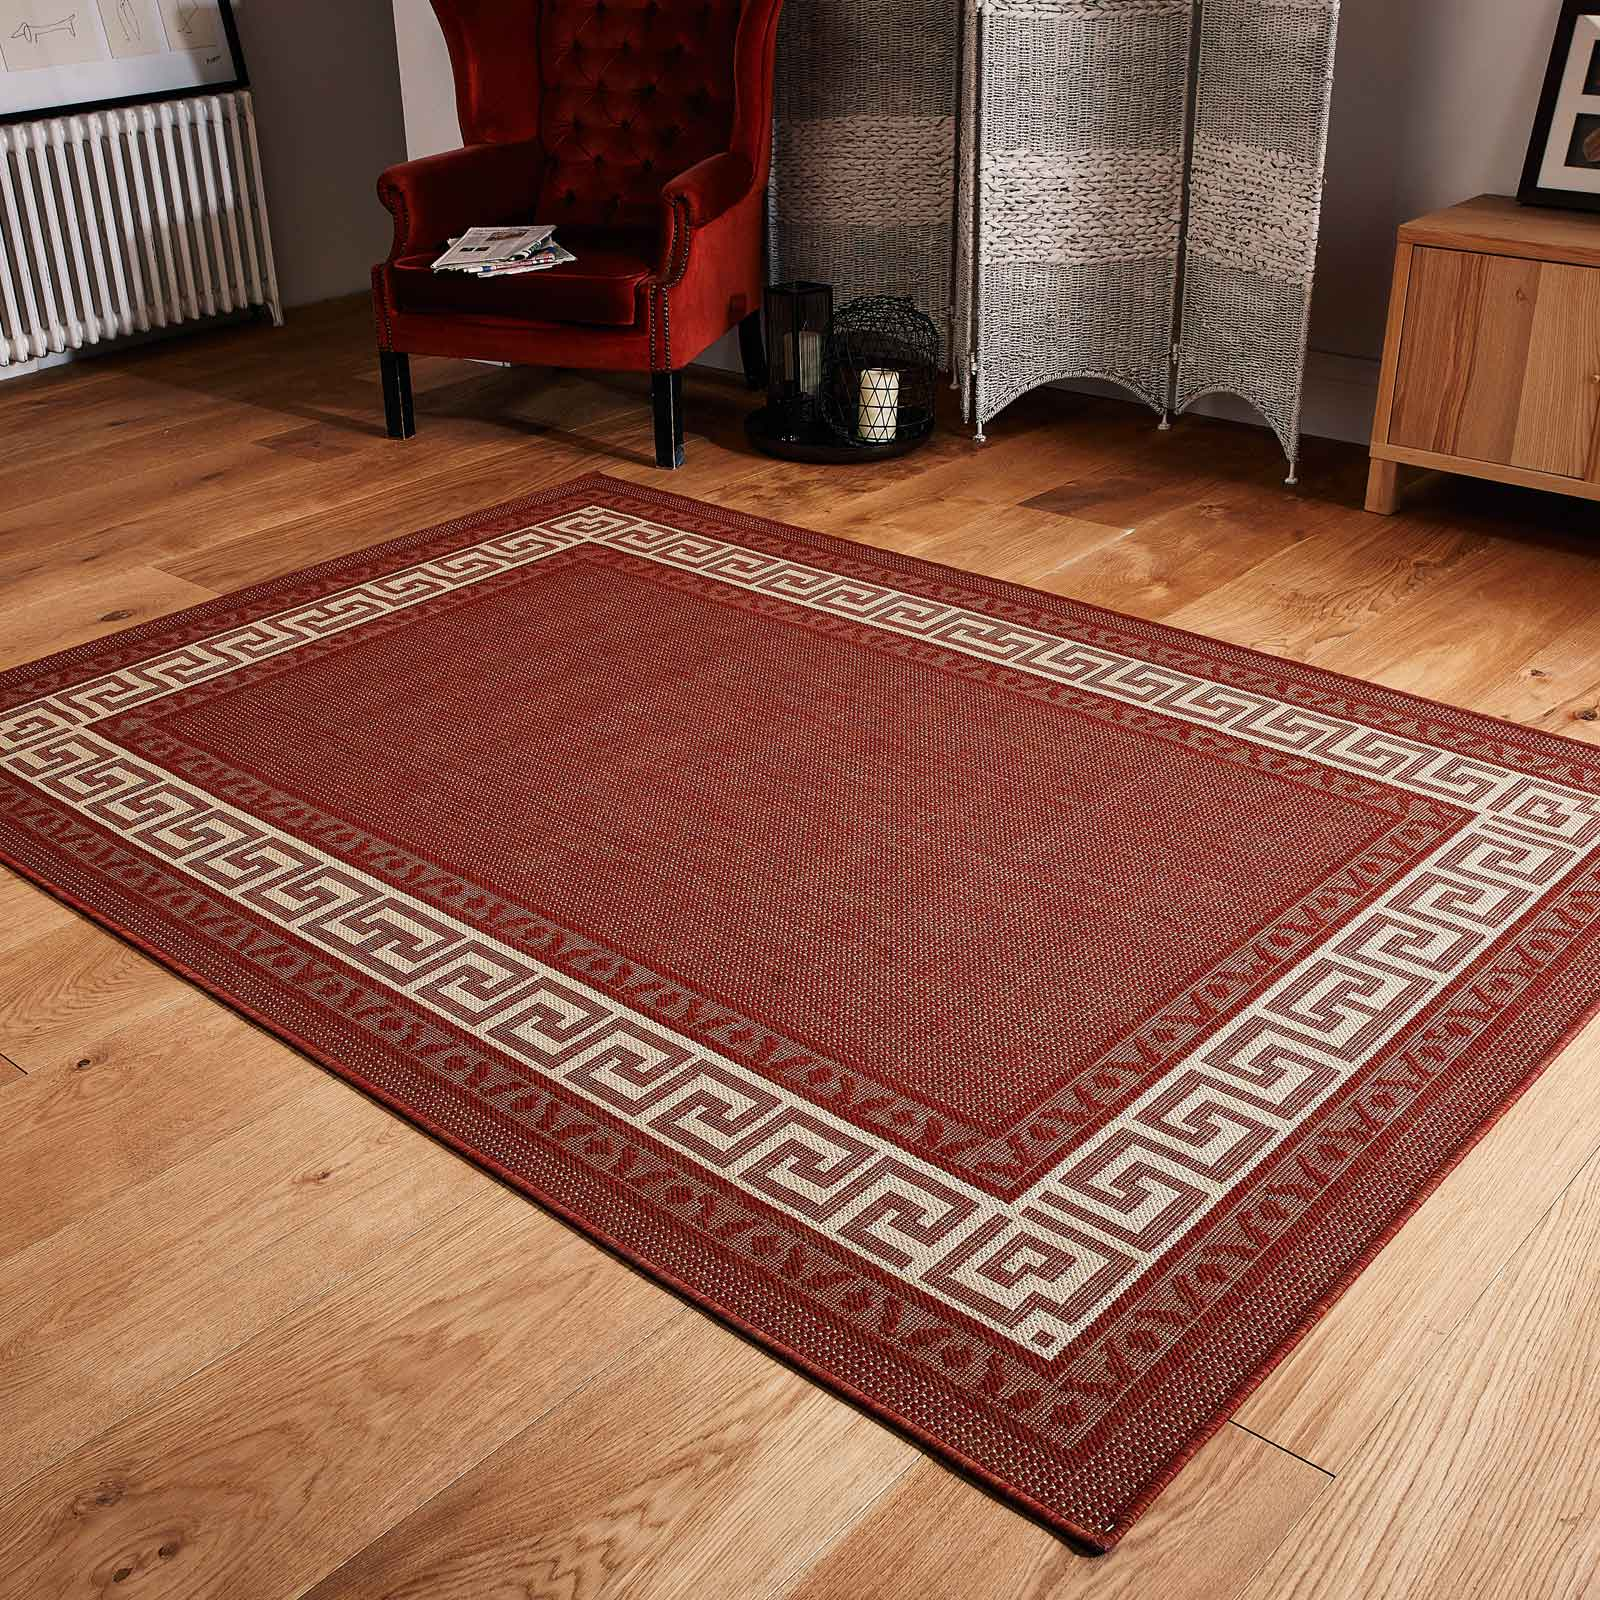 Greek Key Flatweave Anti Slip Rugs In Terracotta